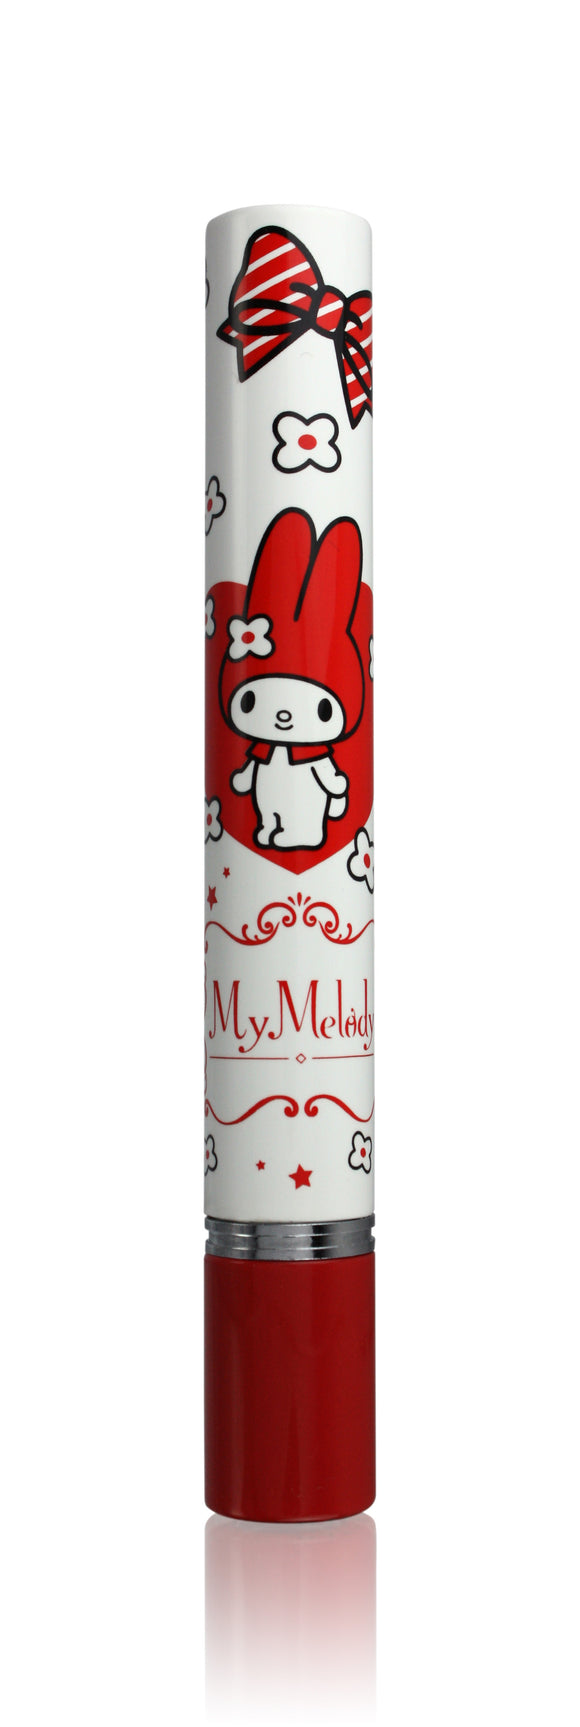 My Melody Perfume Atomizer P760MM01